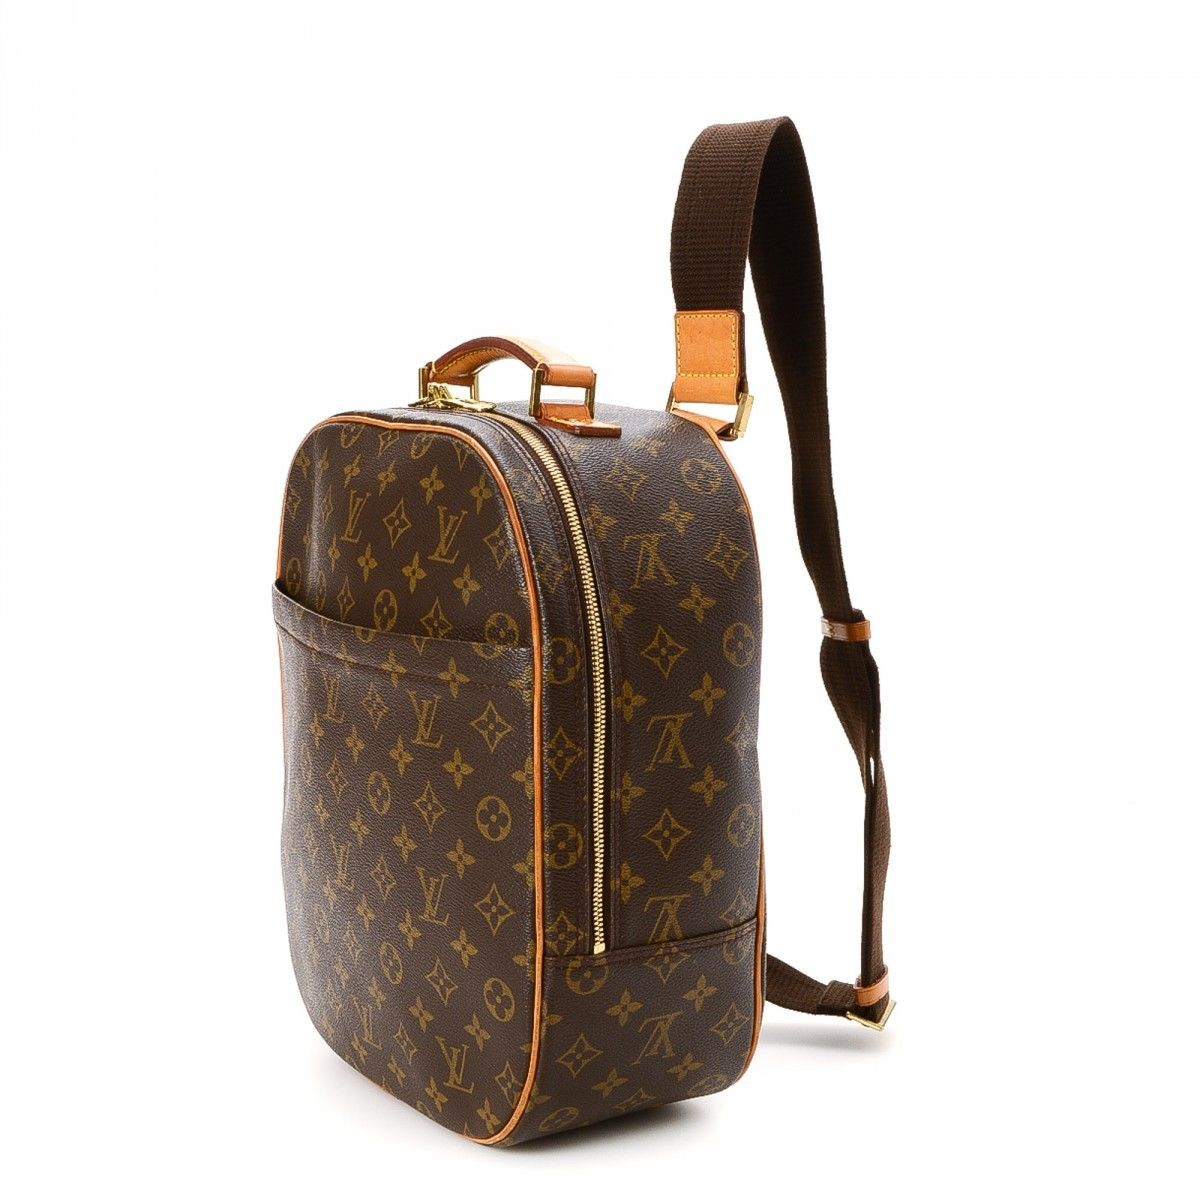 louis vuitton sac a dos packall monogram coated canvas lxrandco pre owned luxury vintage